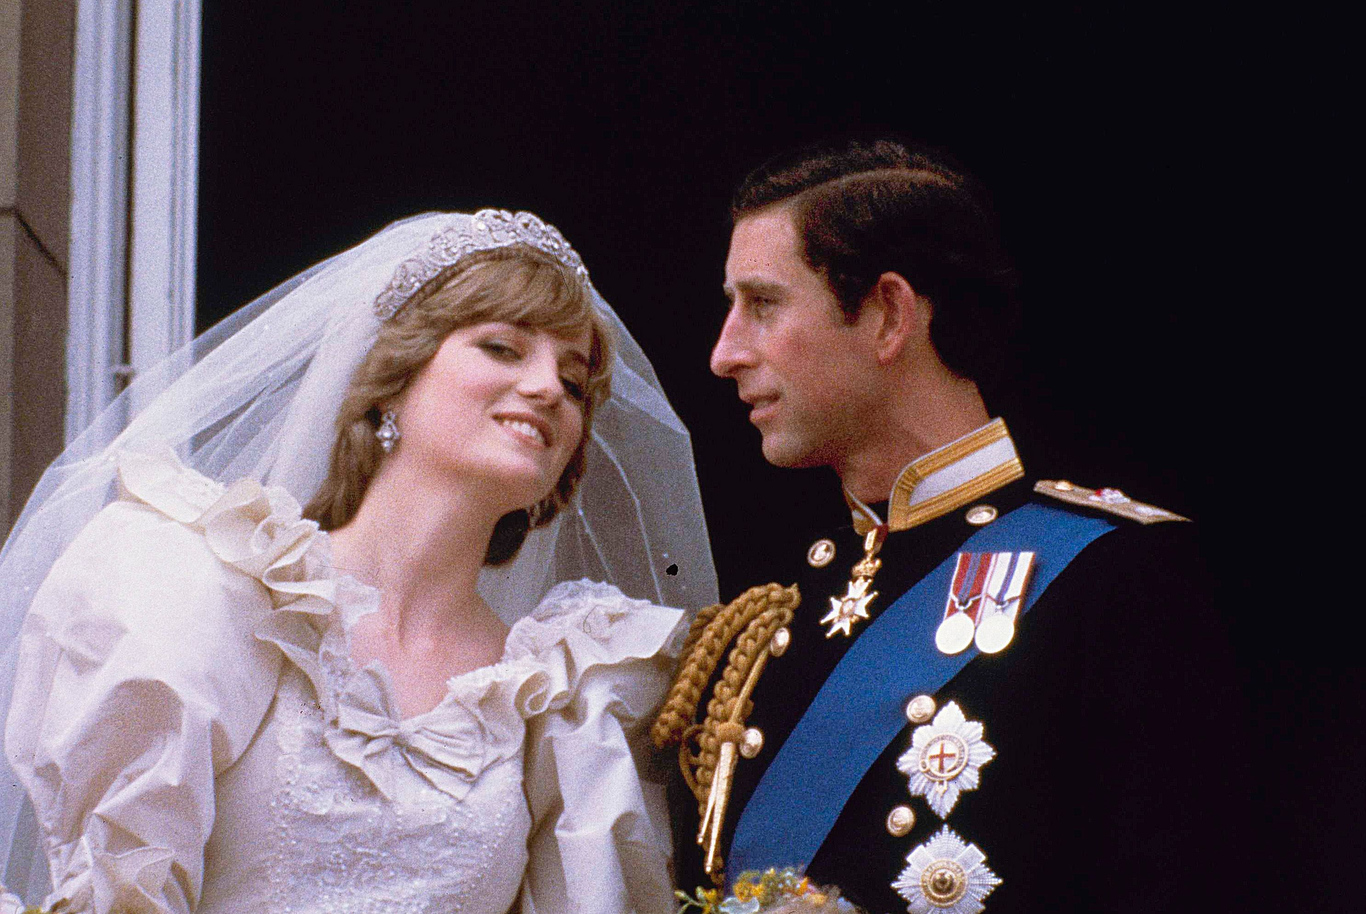 Prince Charles and his bride Diana, Princess of Wales, are shown on their wedding day on the balcony of Buckingham Palace in London